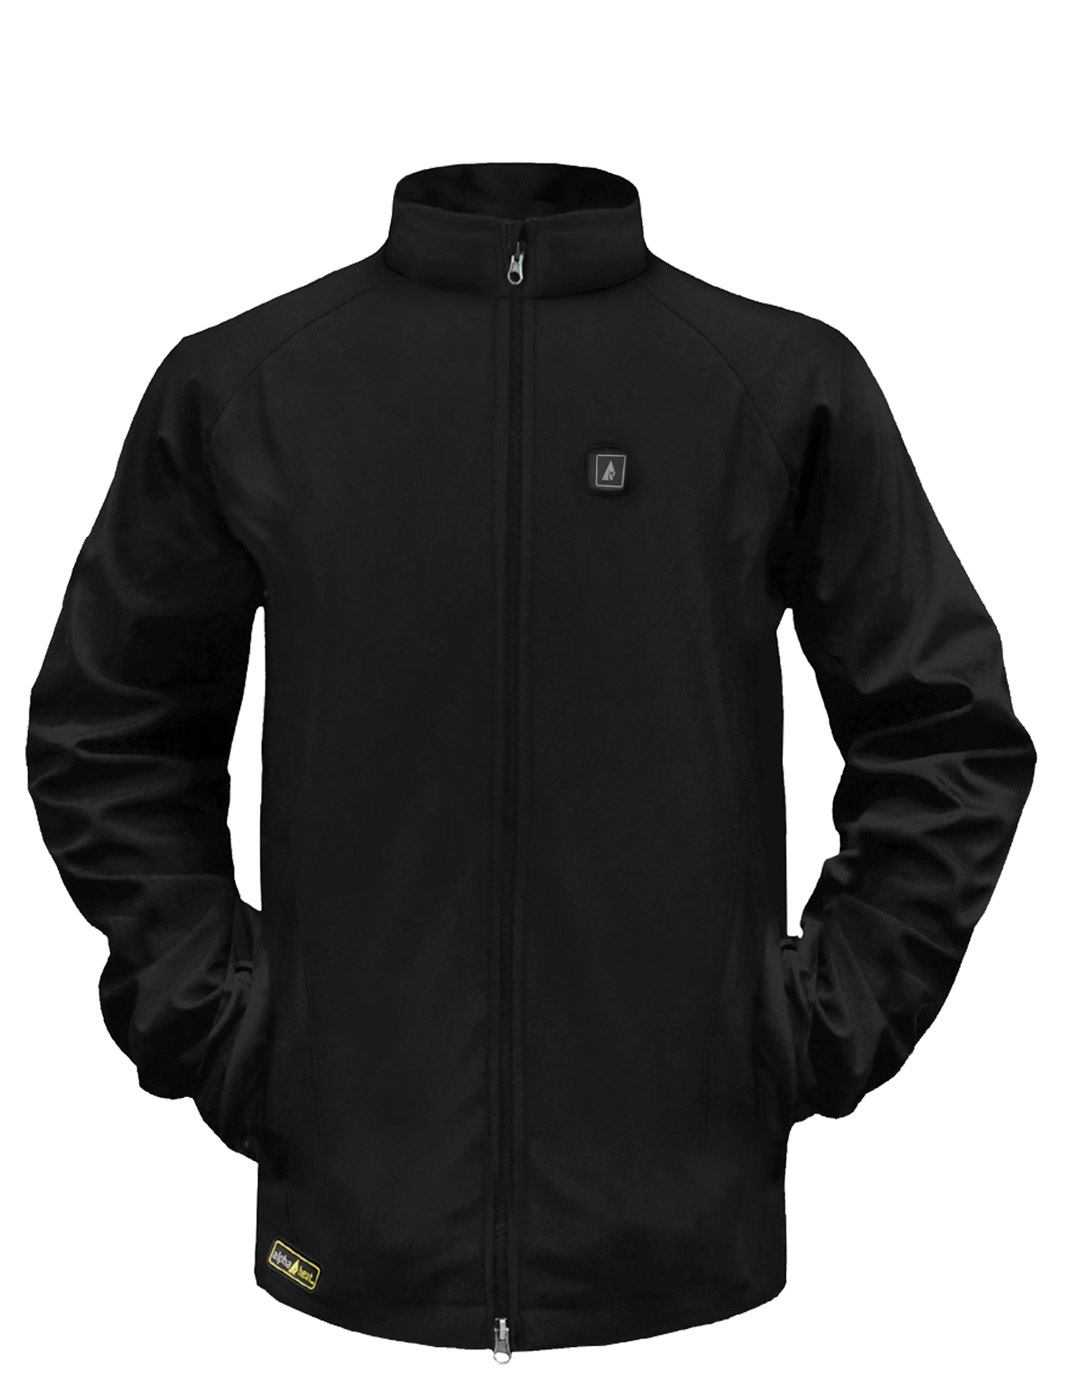 The ActionHeat battery heated jackets are revolutionary in the world of heated clothing. Using the patented 5V signal technology, it allows for any 5V battery to be used with the ActionHeat Jackets and Vests. This allows for unlimited battery options an